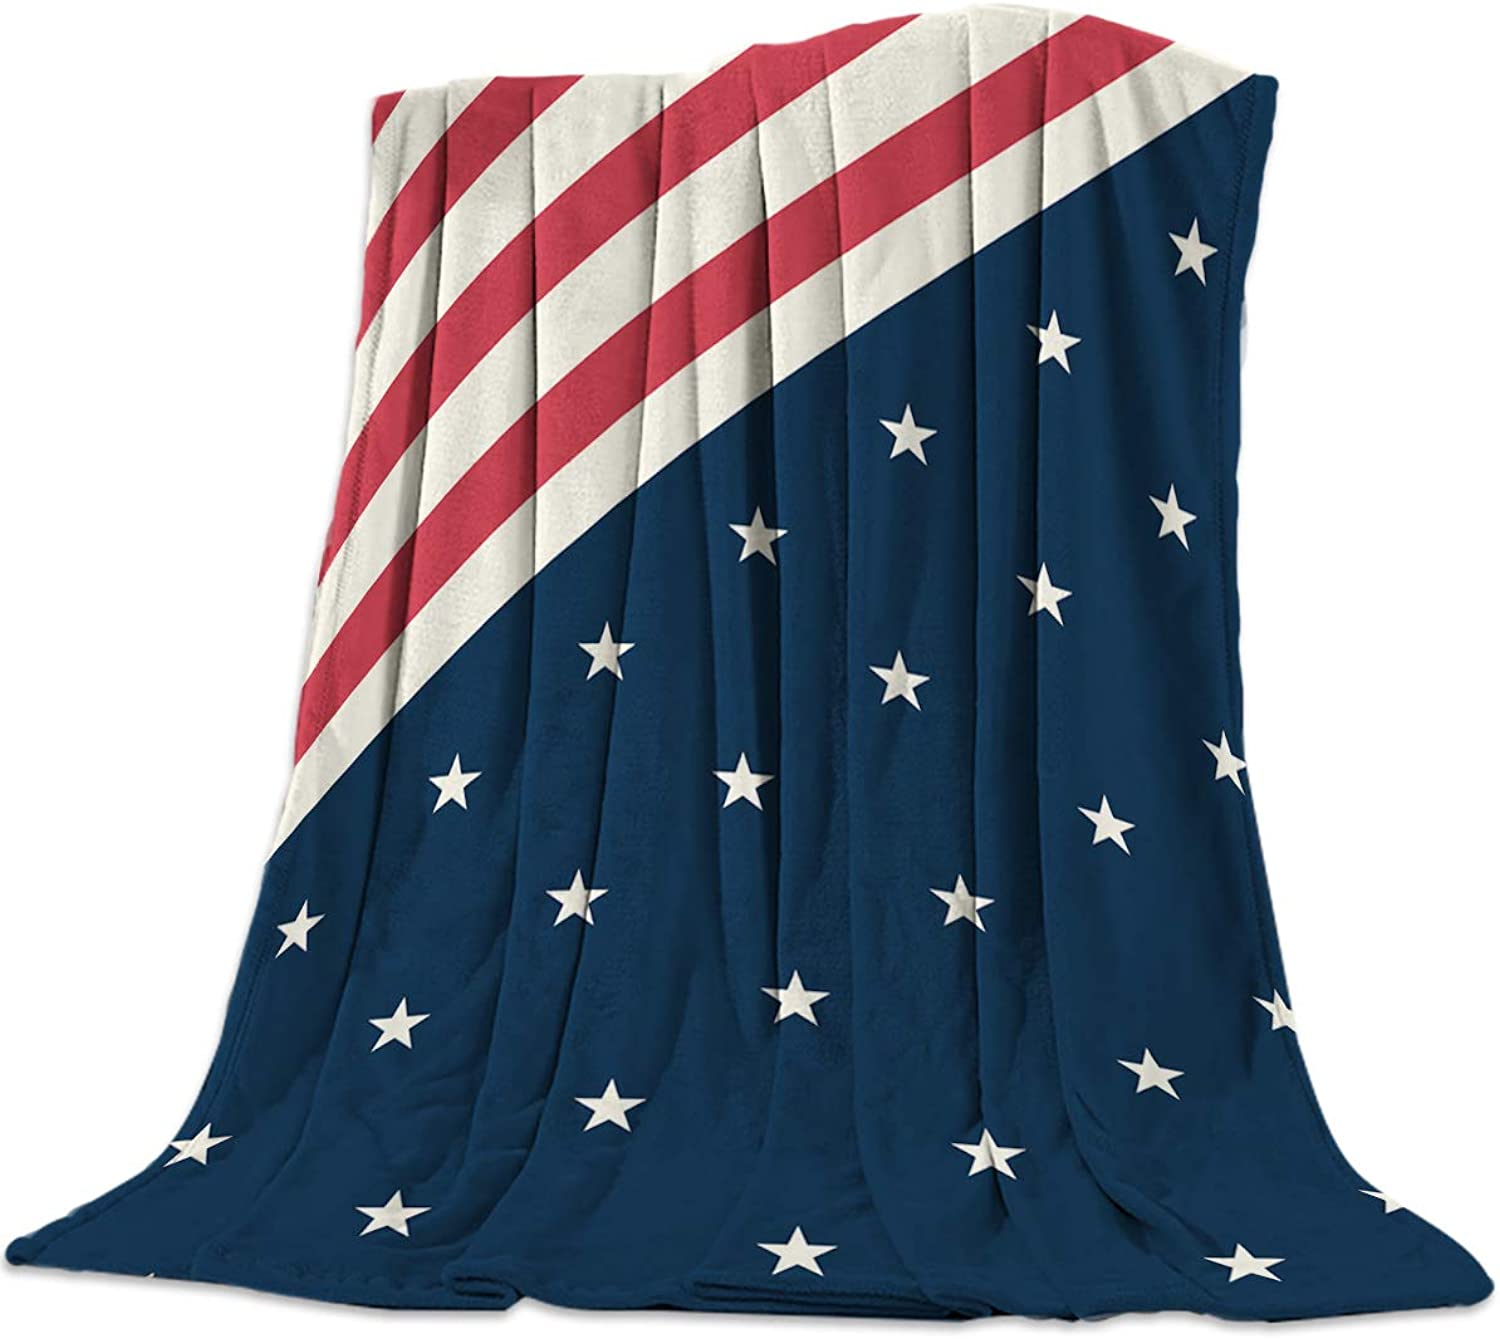 T&H Home Artistic Blanket, USA Flag Soft Flannel Fleece Bed Blacket for Couch, Throw Blanket for Cover Men Women Aults Kids Girls Boys 50 x60